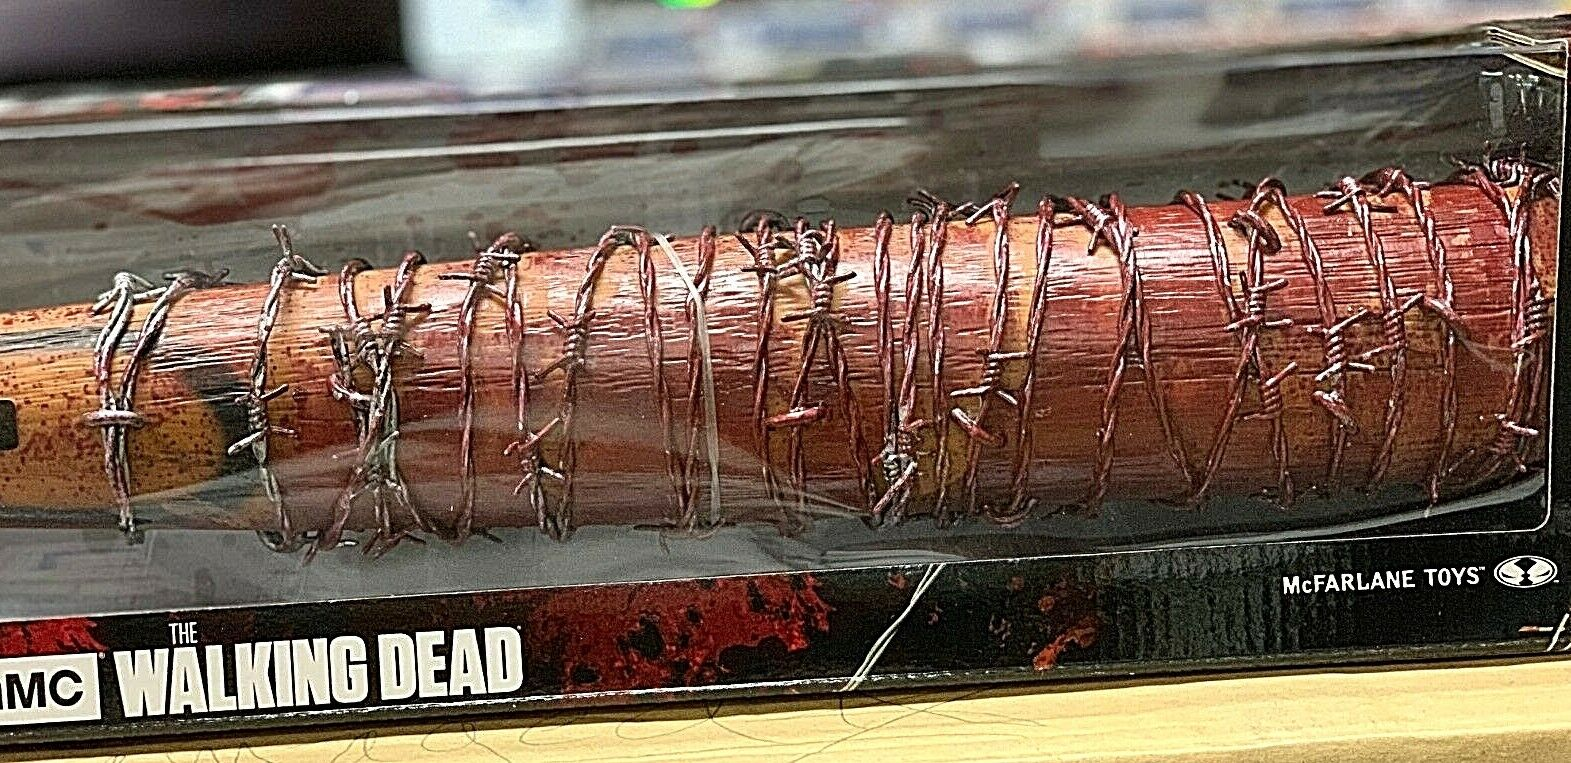 McFarlane Walre Dead Negan's Bat Lucille Take it  Like A Champ Bloody Version  colorways incredibili